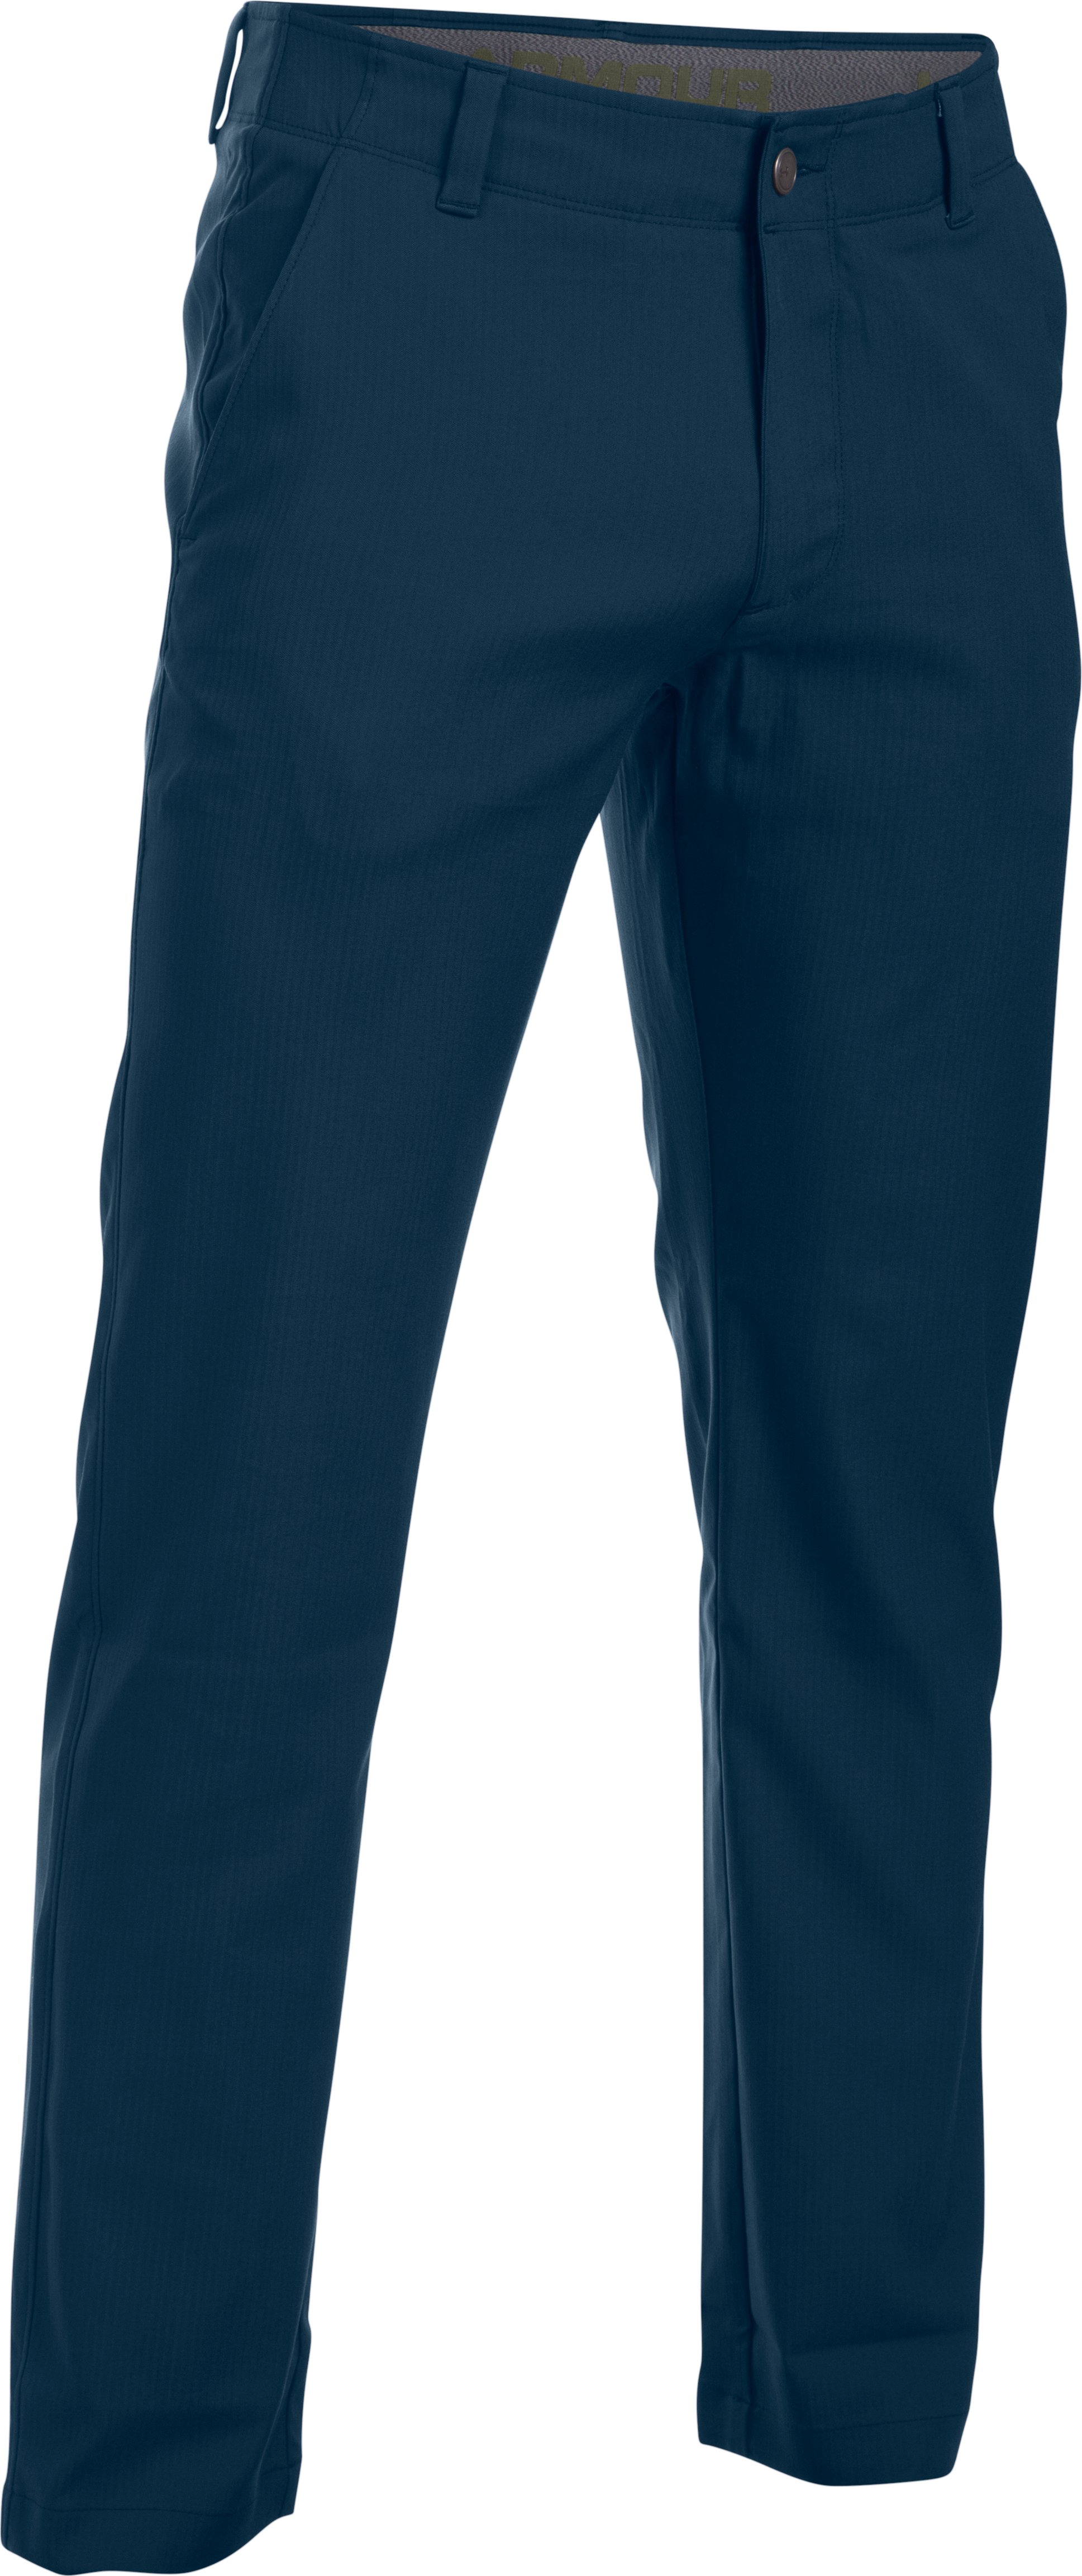 Men's UA Tips Golf Pants, Academy, undefined